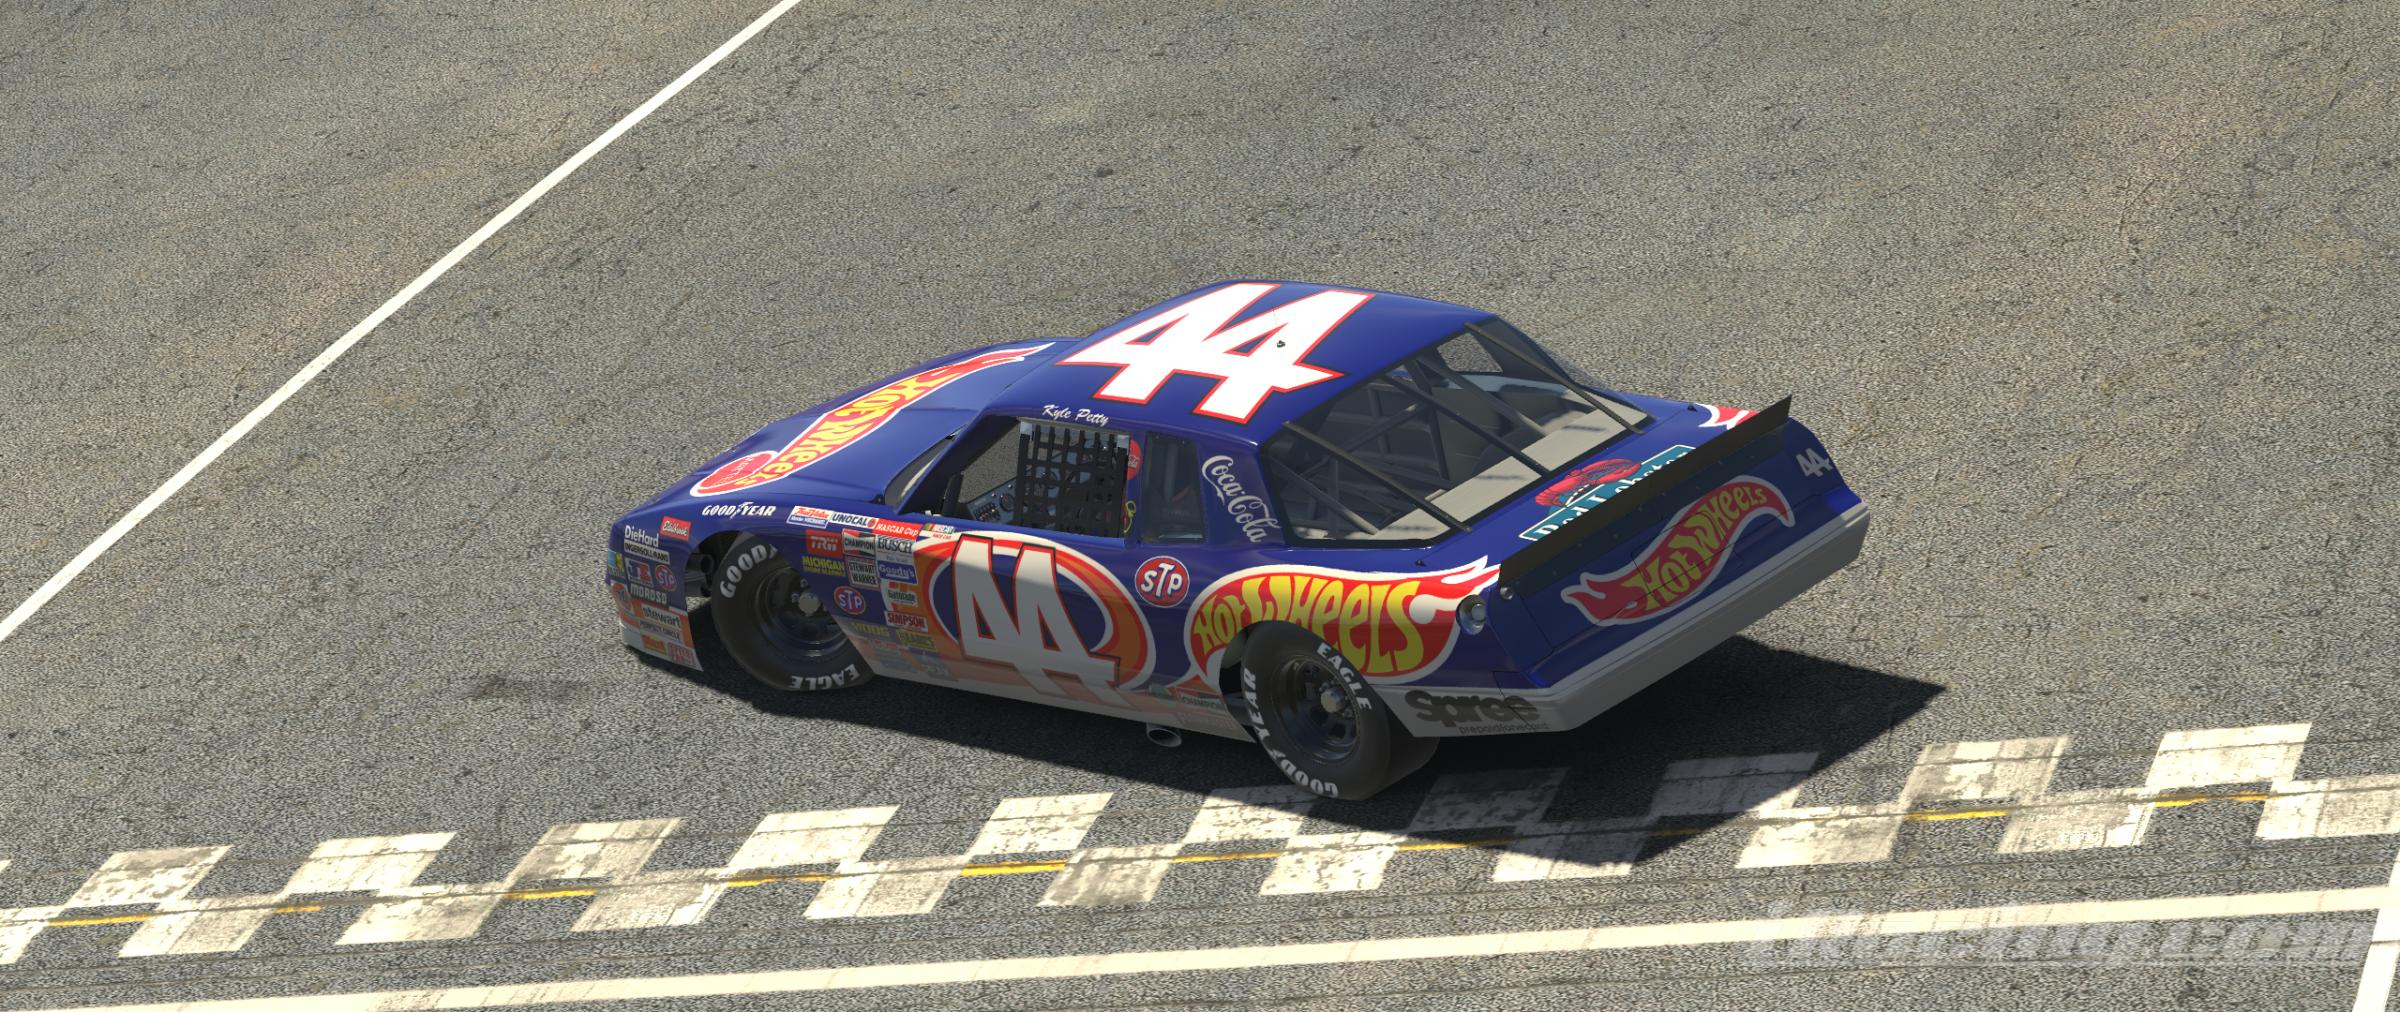 Preview of Kyle Petty 1998 Hot Wheels Grand Prix (No Number) by Evan Pienta